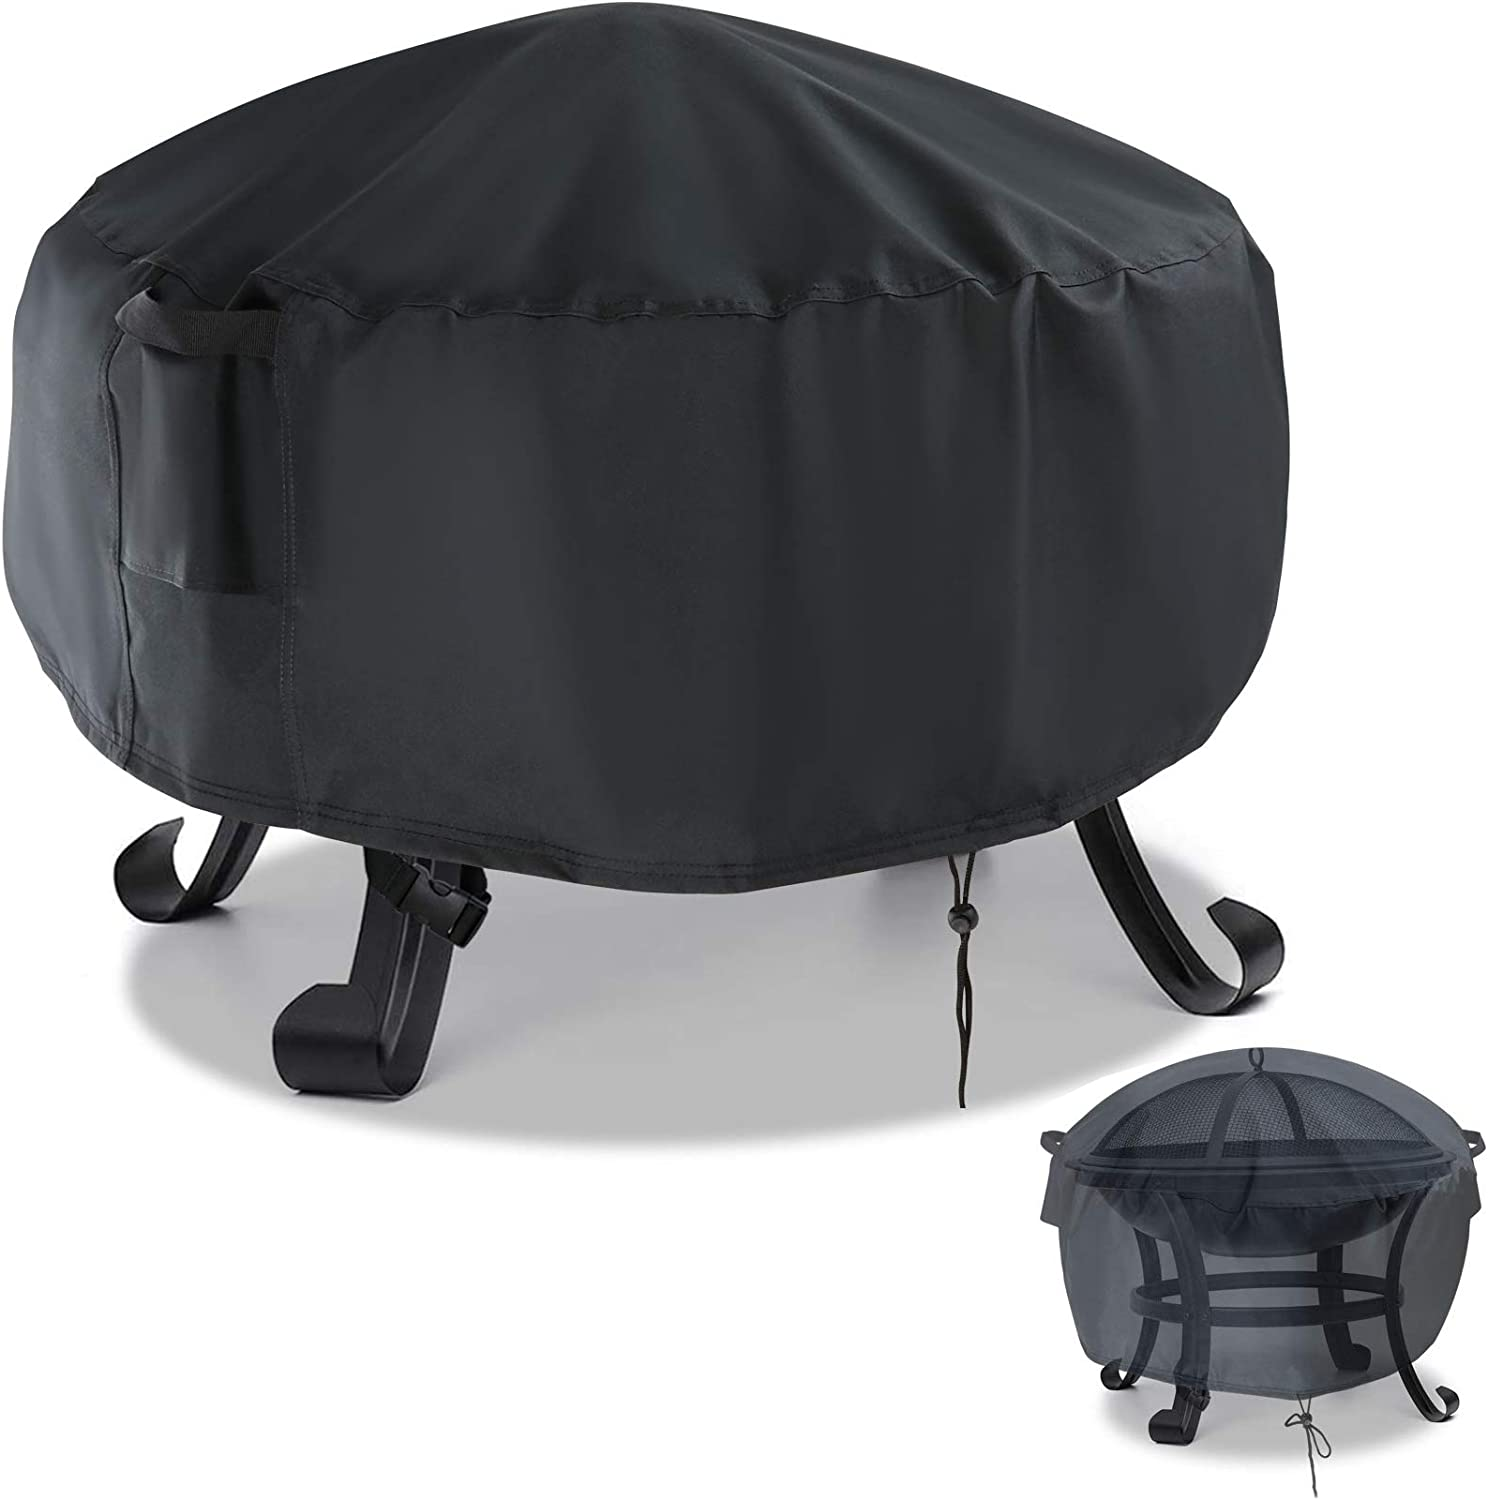 Aidetech Industry mart No. 1 Gas Fire Pit Cover Round 30 W PVC Inch 600D Duty Heavy